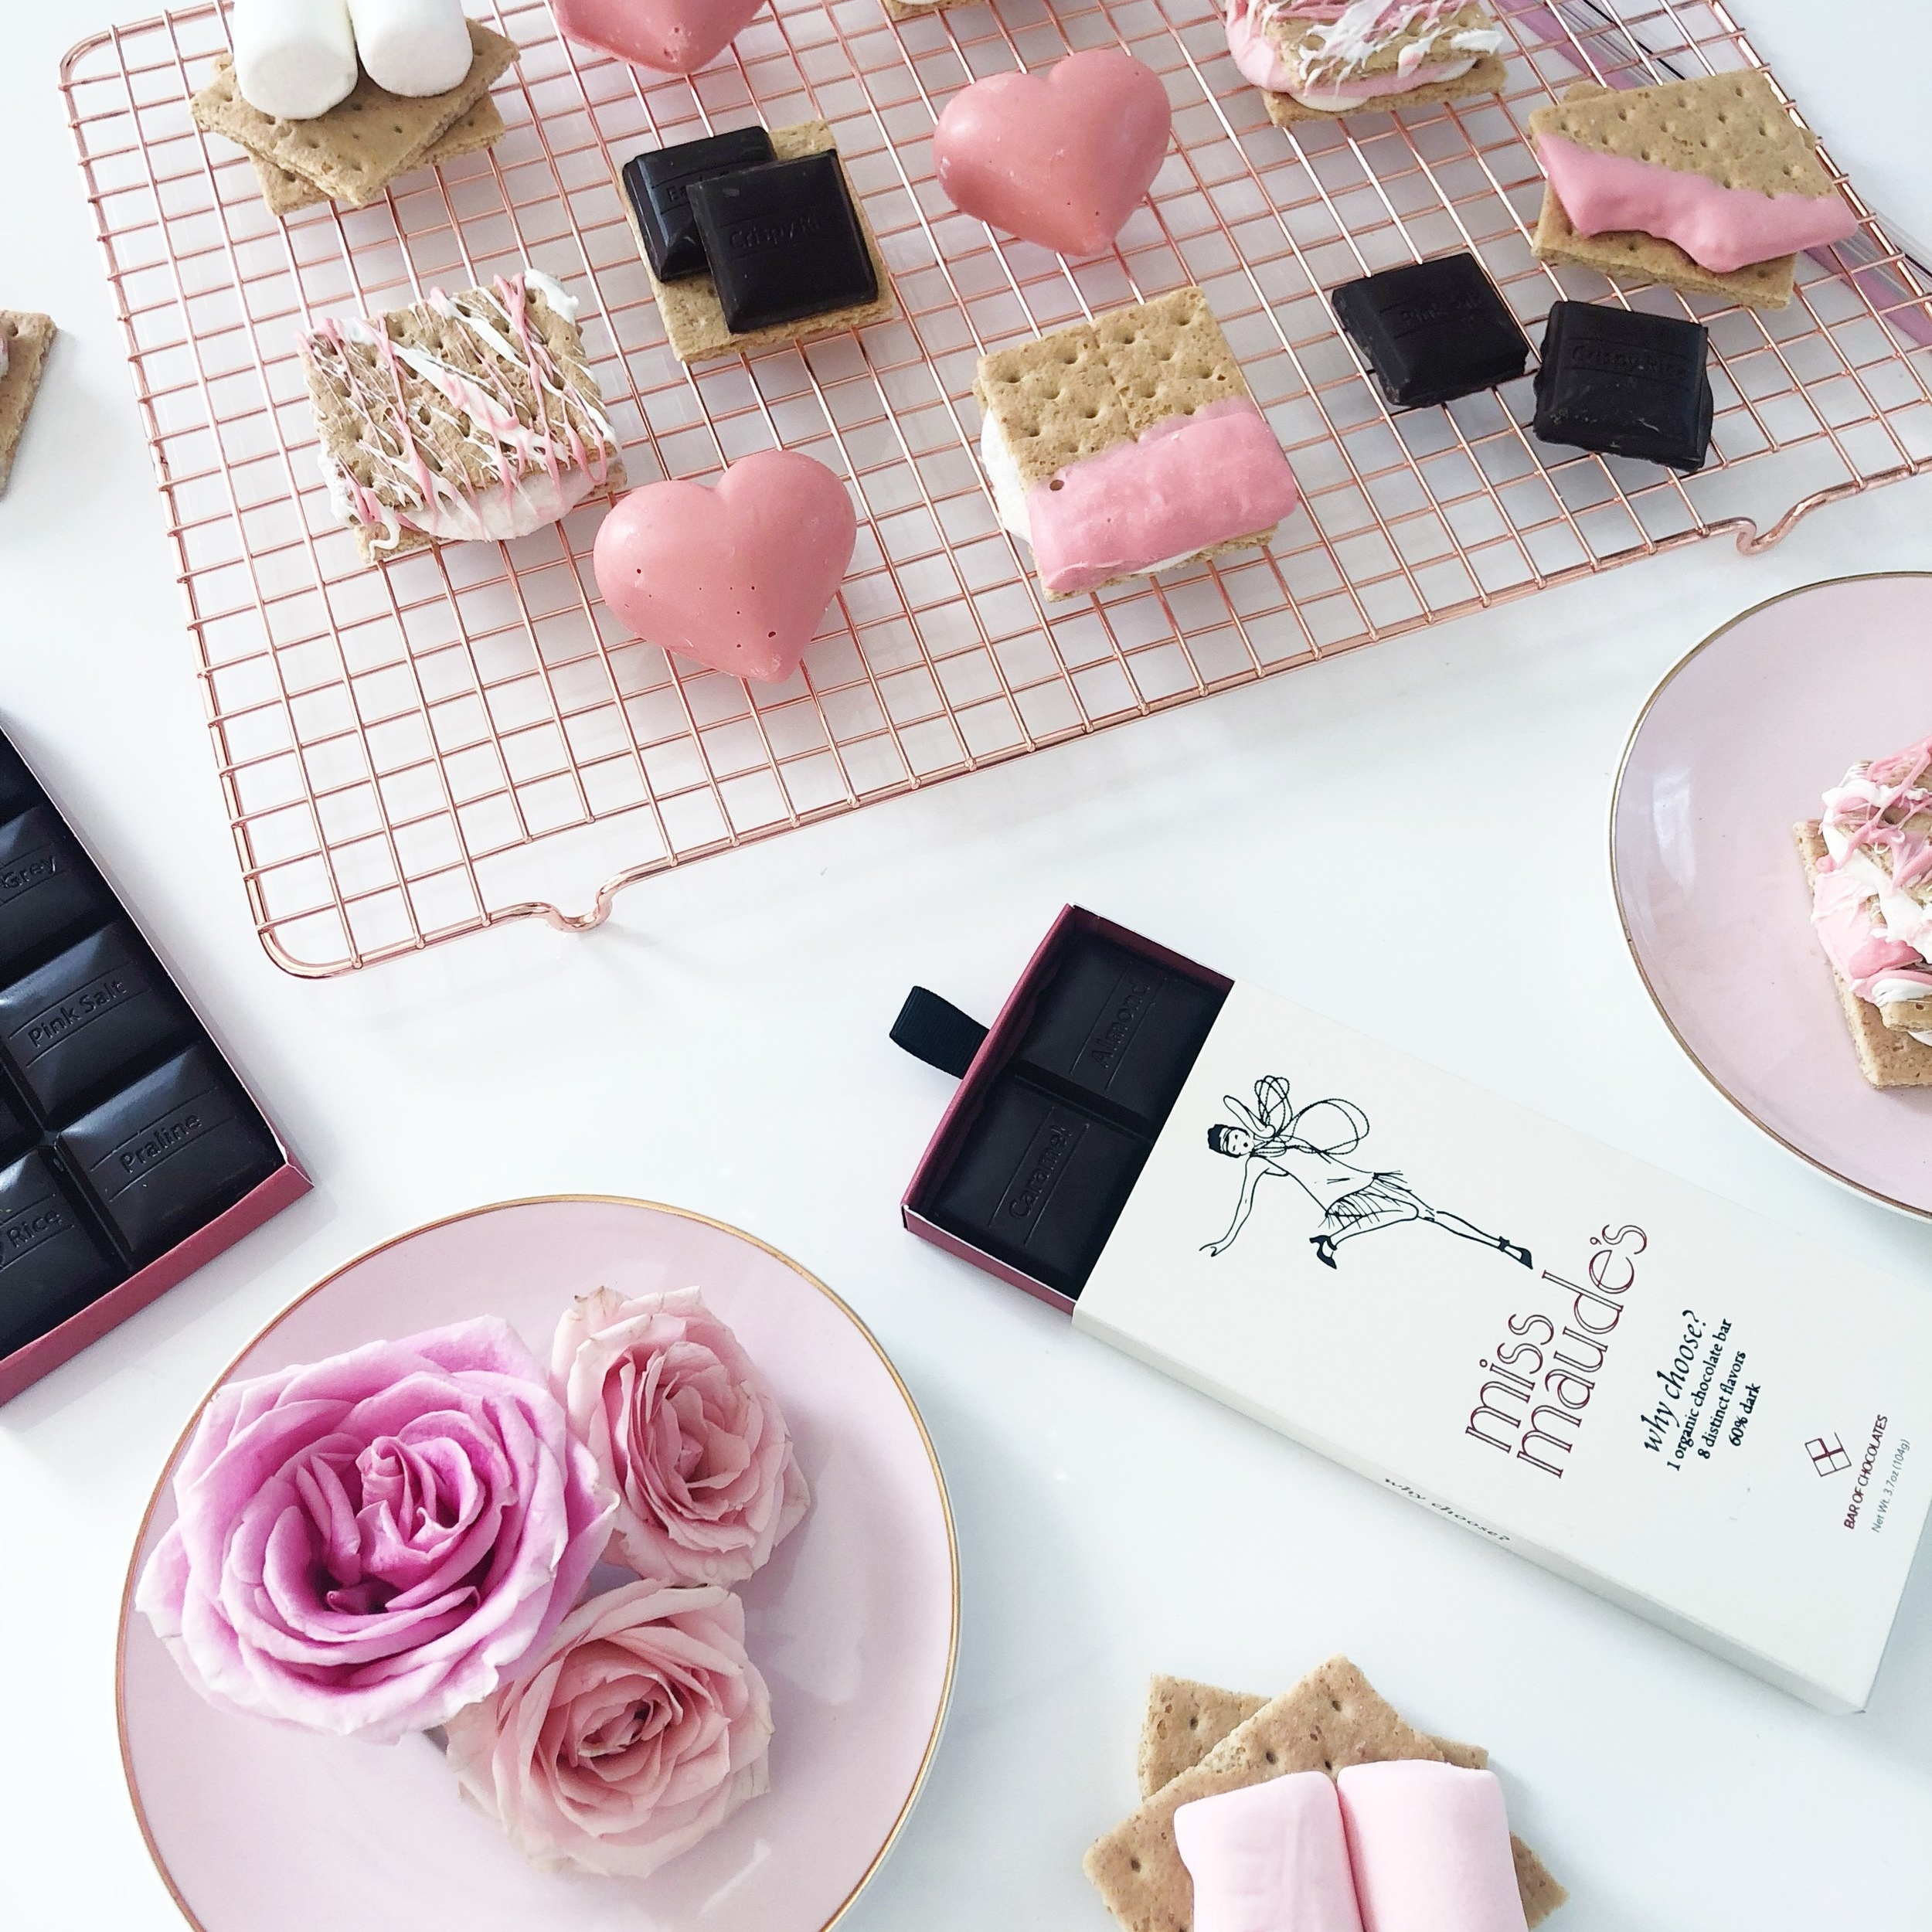 THE-CAROLINE-DOLL-NATIONAL-SMORES-DAY-LIFESTYLE-BLOGGER-3.JPG